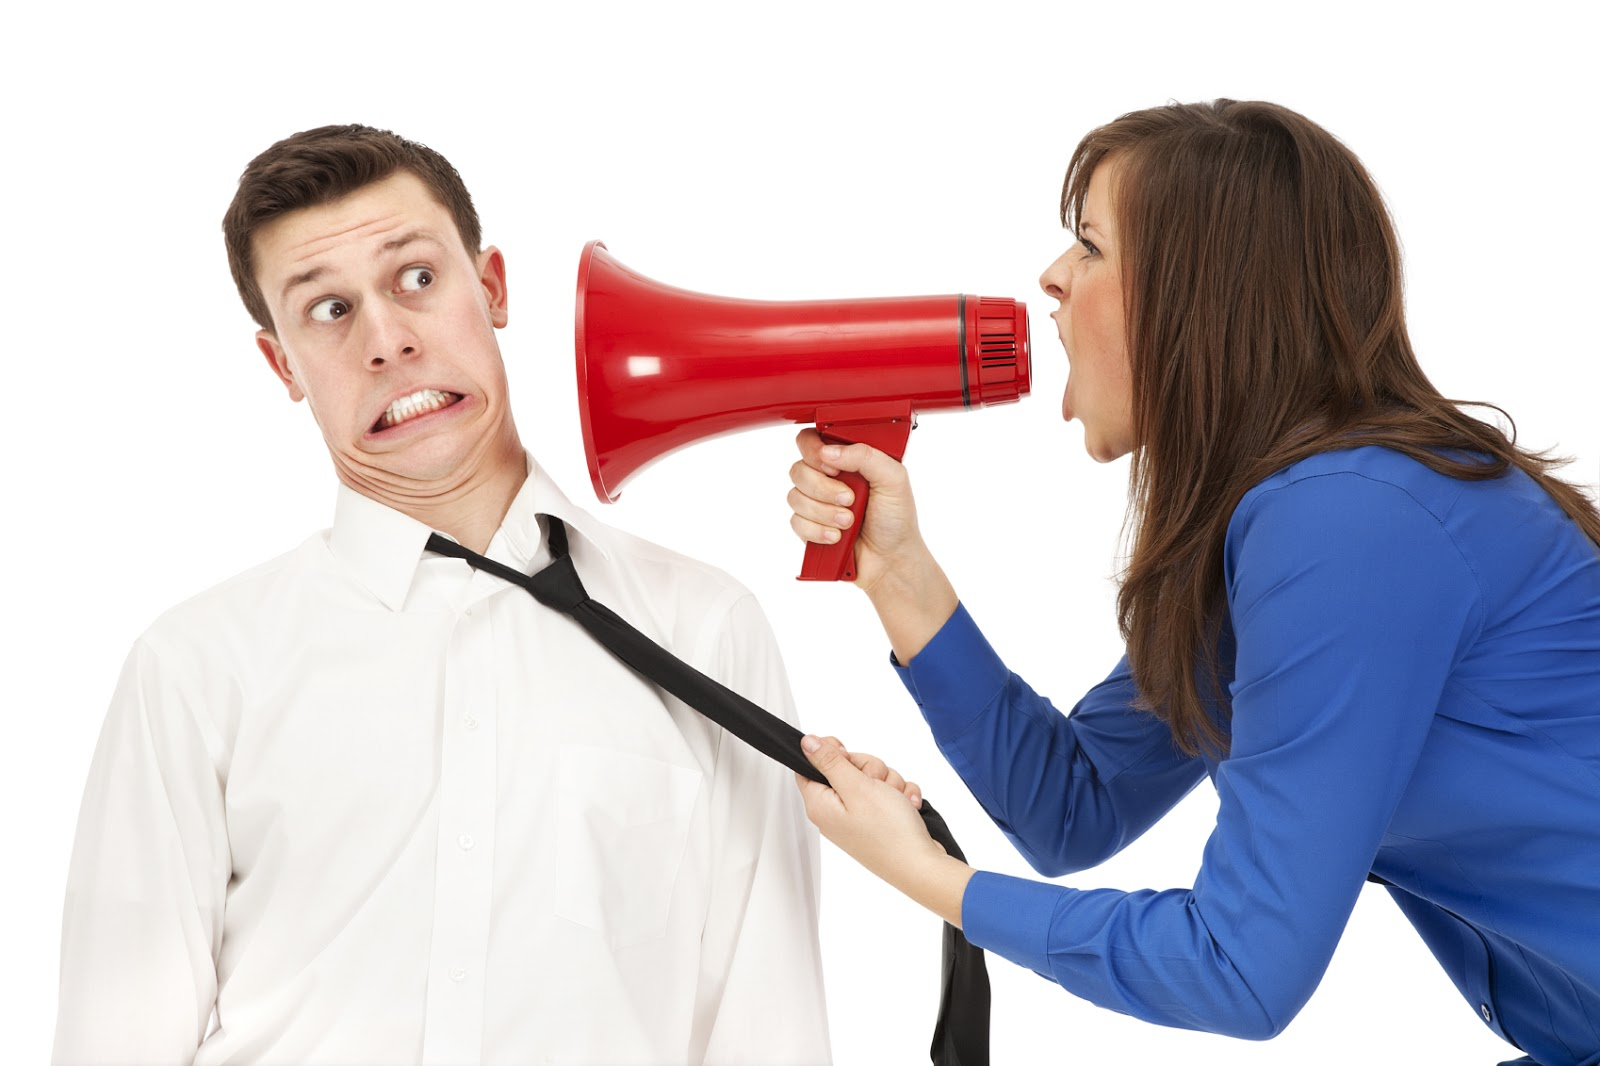 Can You Sue Your Boss for Yelling at You? How to Know if Your Bullying Boss Is Breaking the Law